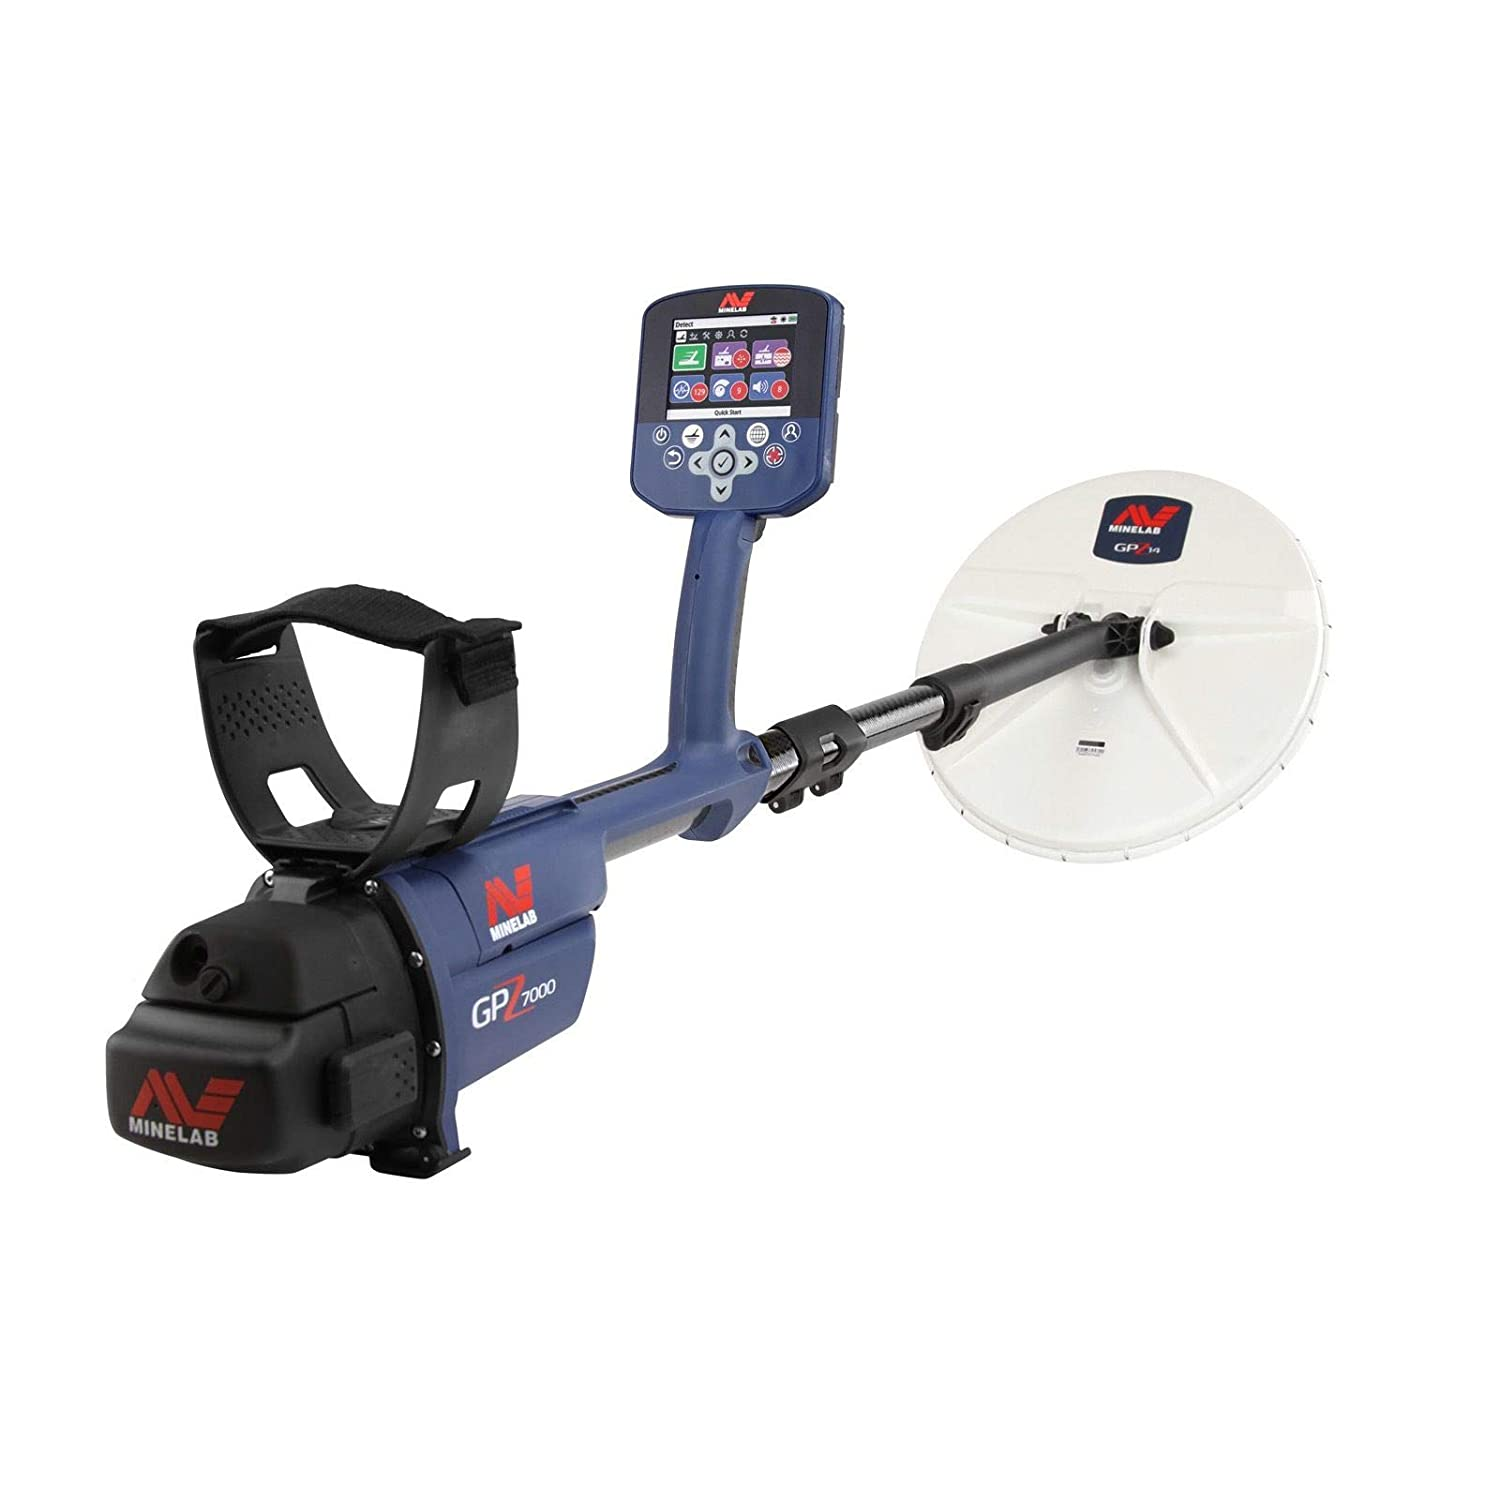 Amazon.com : Minelab GPZ 7000 Gold Detector Holiday Bundle with Extra Li-ion Rechargeable Battery : Garden & Outdoor